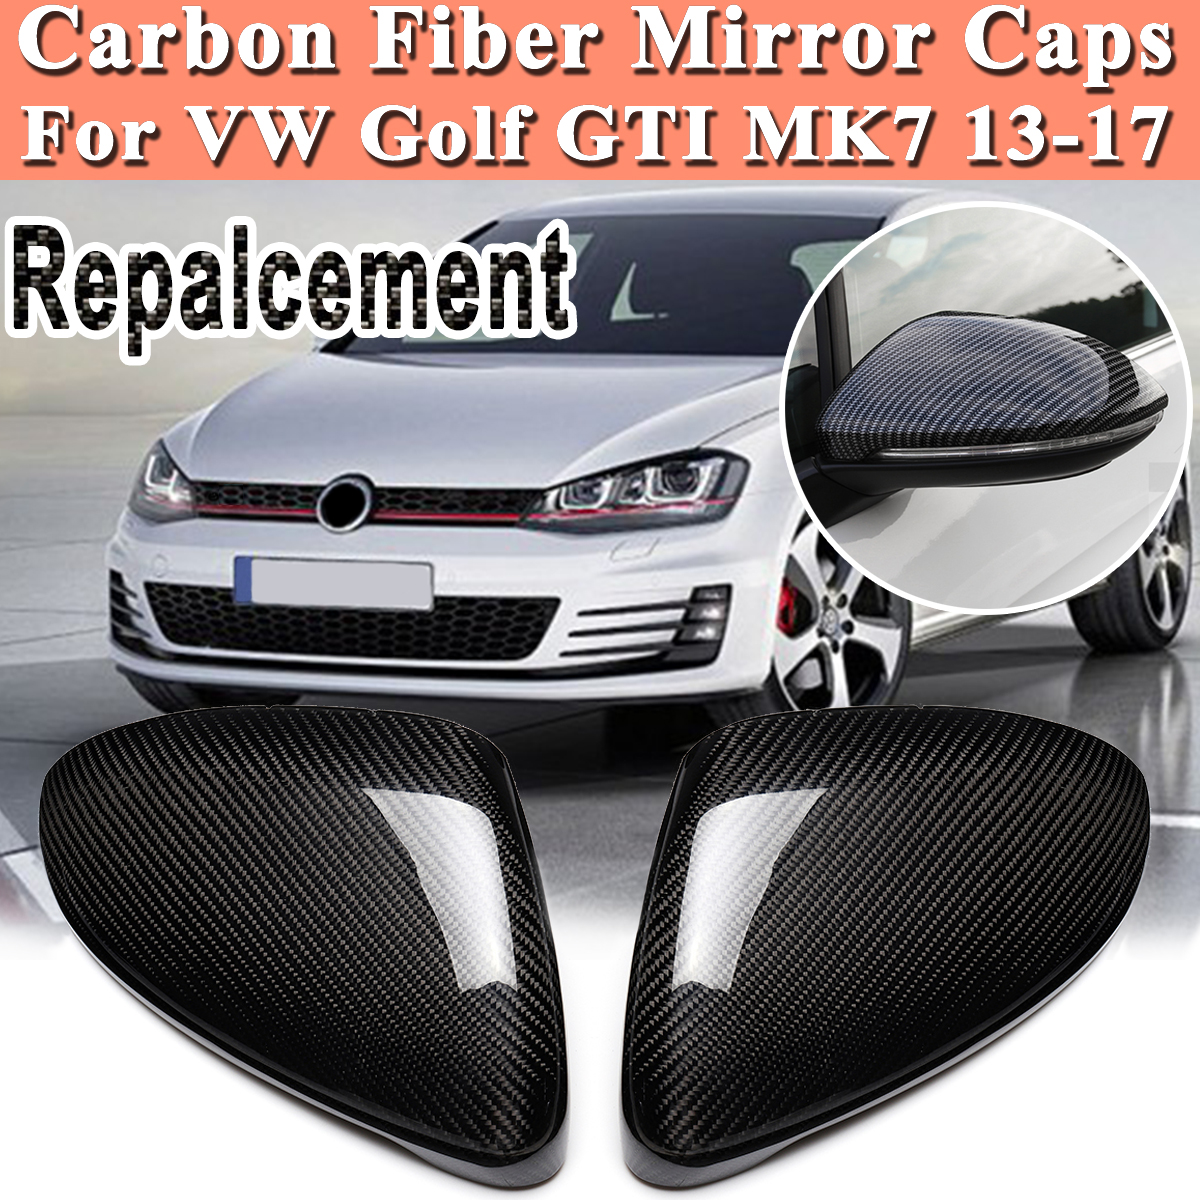 Real Carbon Fiber Rearview Door Side View Mirror Car Wing Mirror Replacement Cover Caps for VW Golf GTI MK7 2013 17 high quality golf 6 mk6 carbon fiber full replacement car review mirror cover caps for vw golf6 mk6